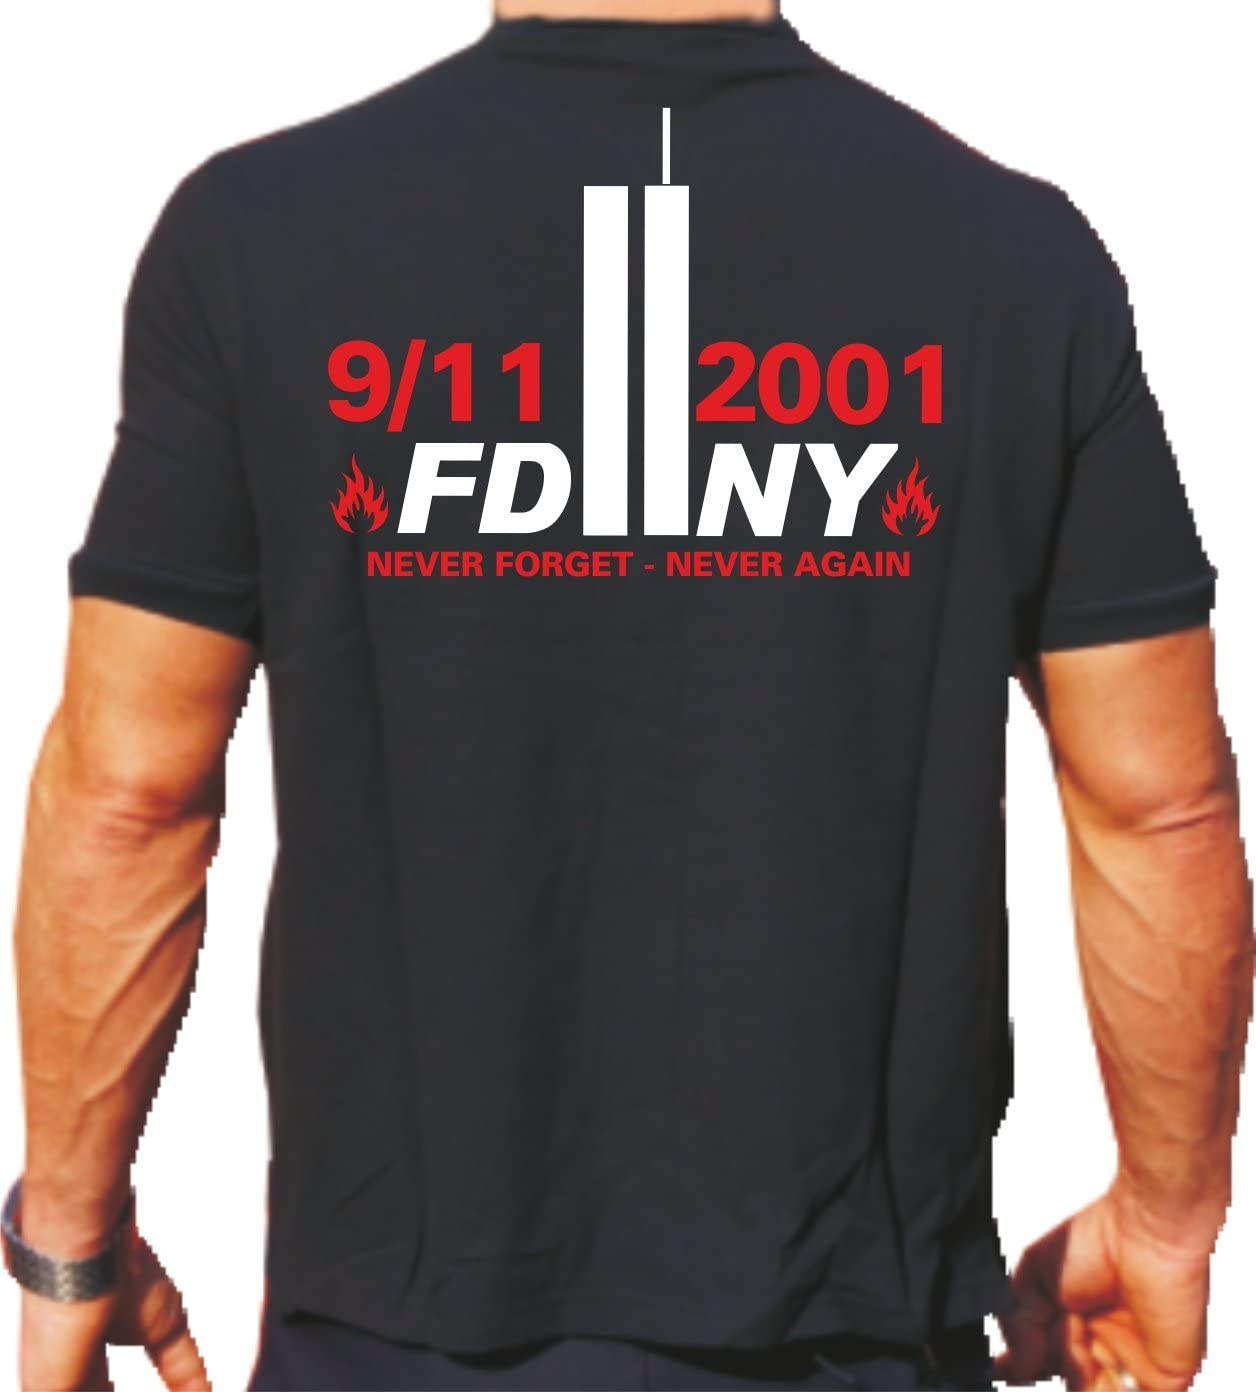 Camiseta de 2001 – 2011 Never Forget Never Again – Bomberos York: Amazon.es: Deportes y aire libre